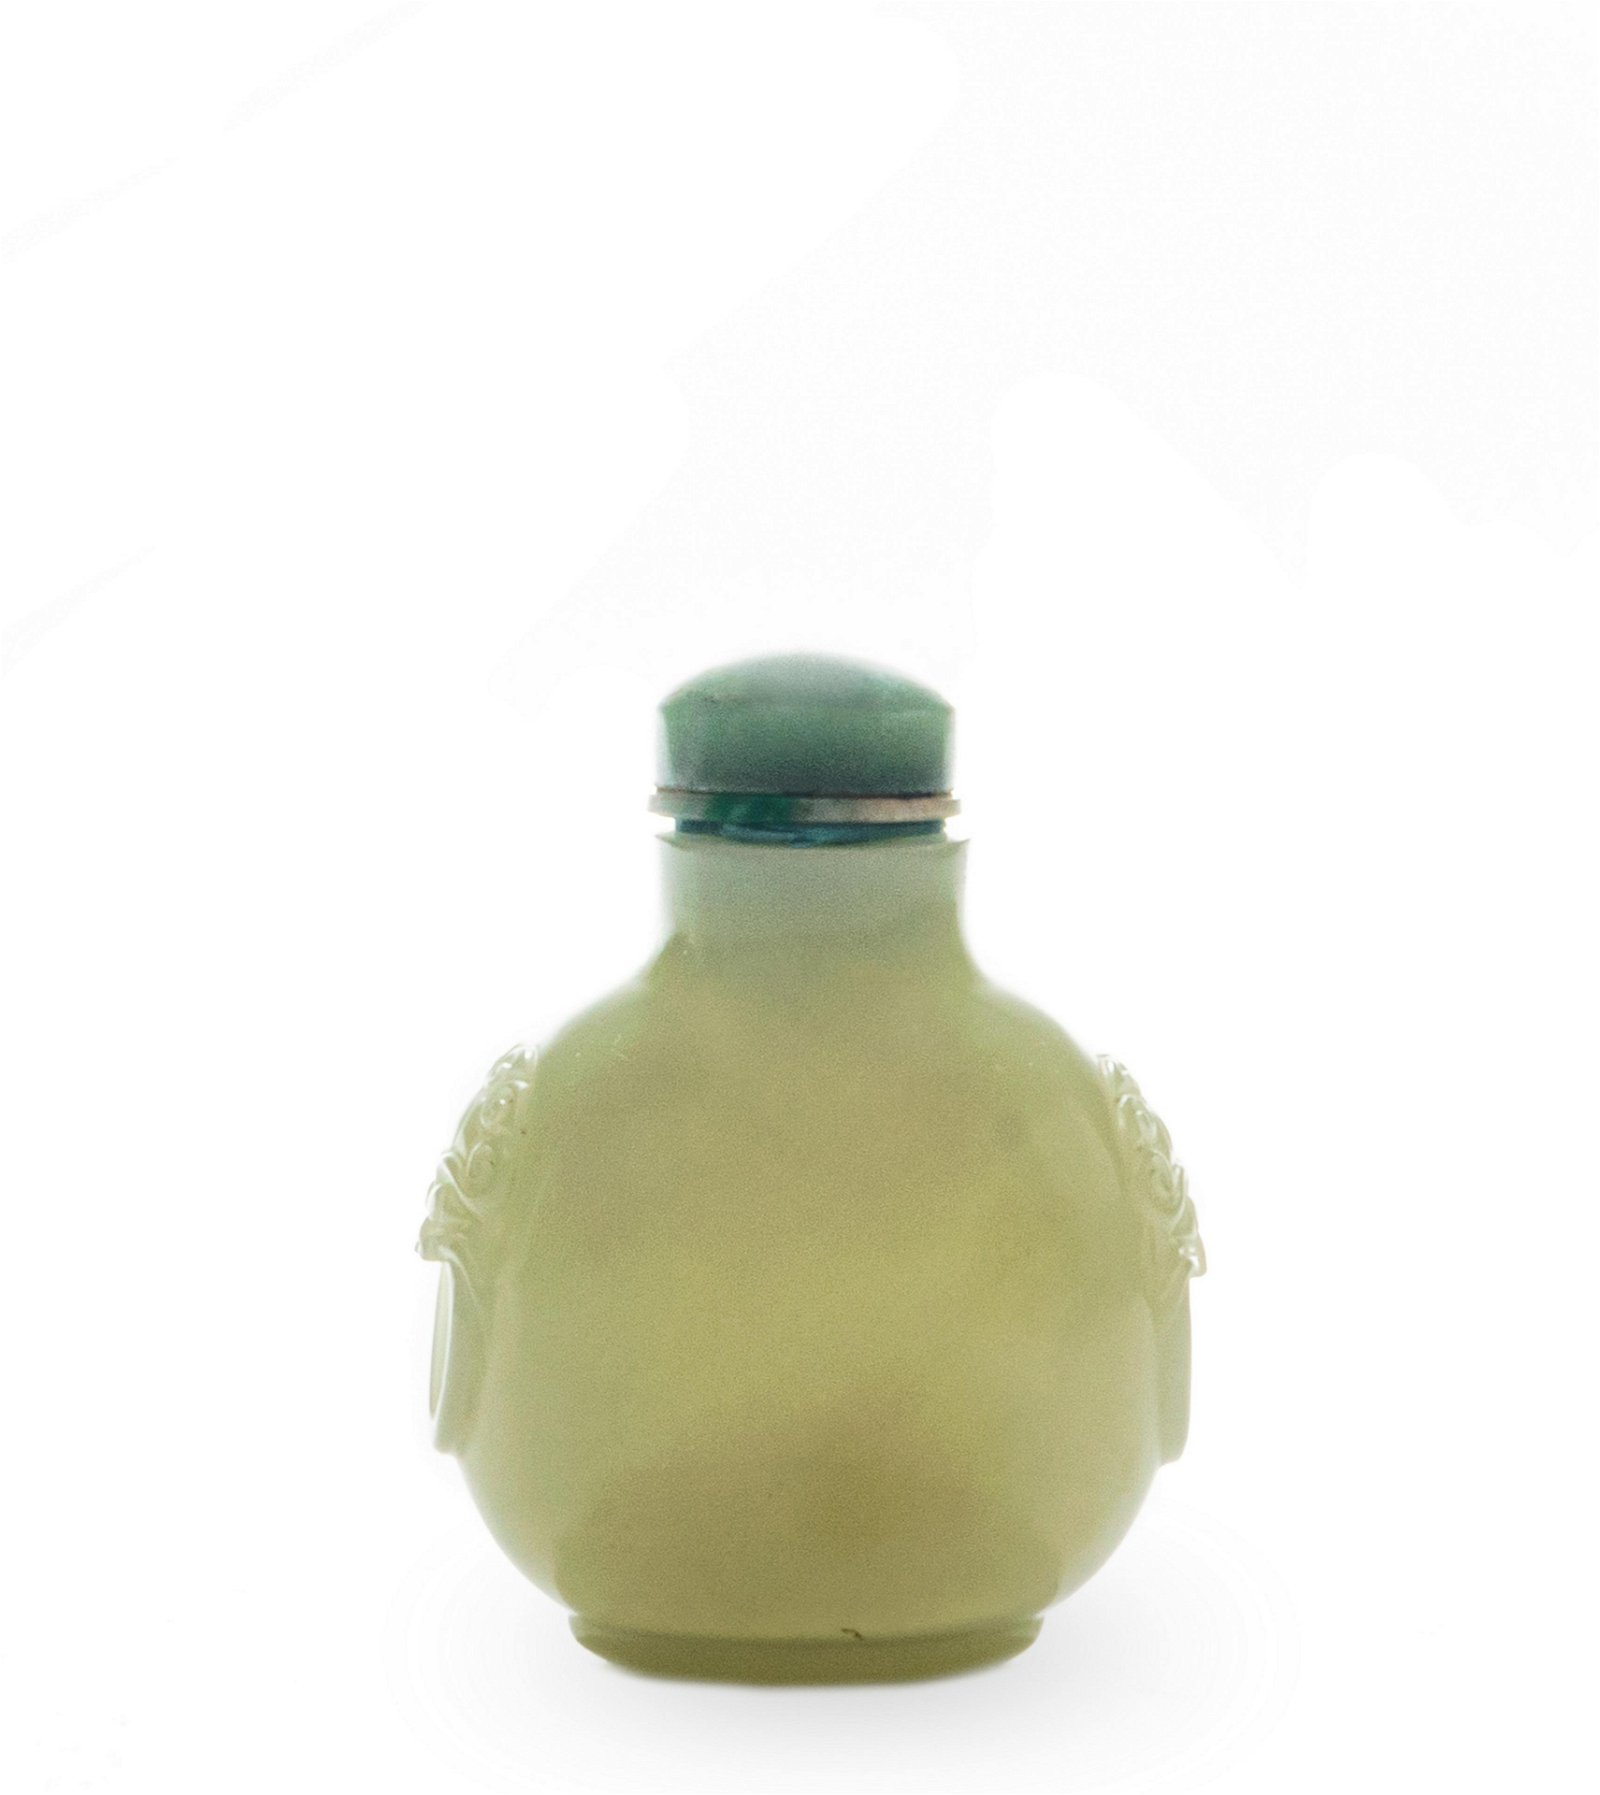 Chinese Jade Carved Snuff Bottle, 18-19th Century